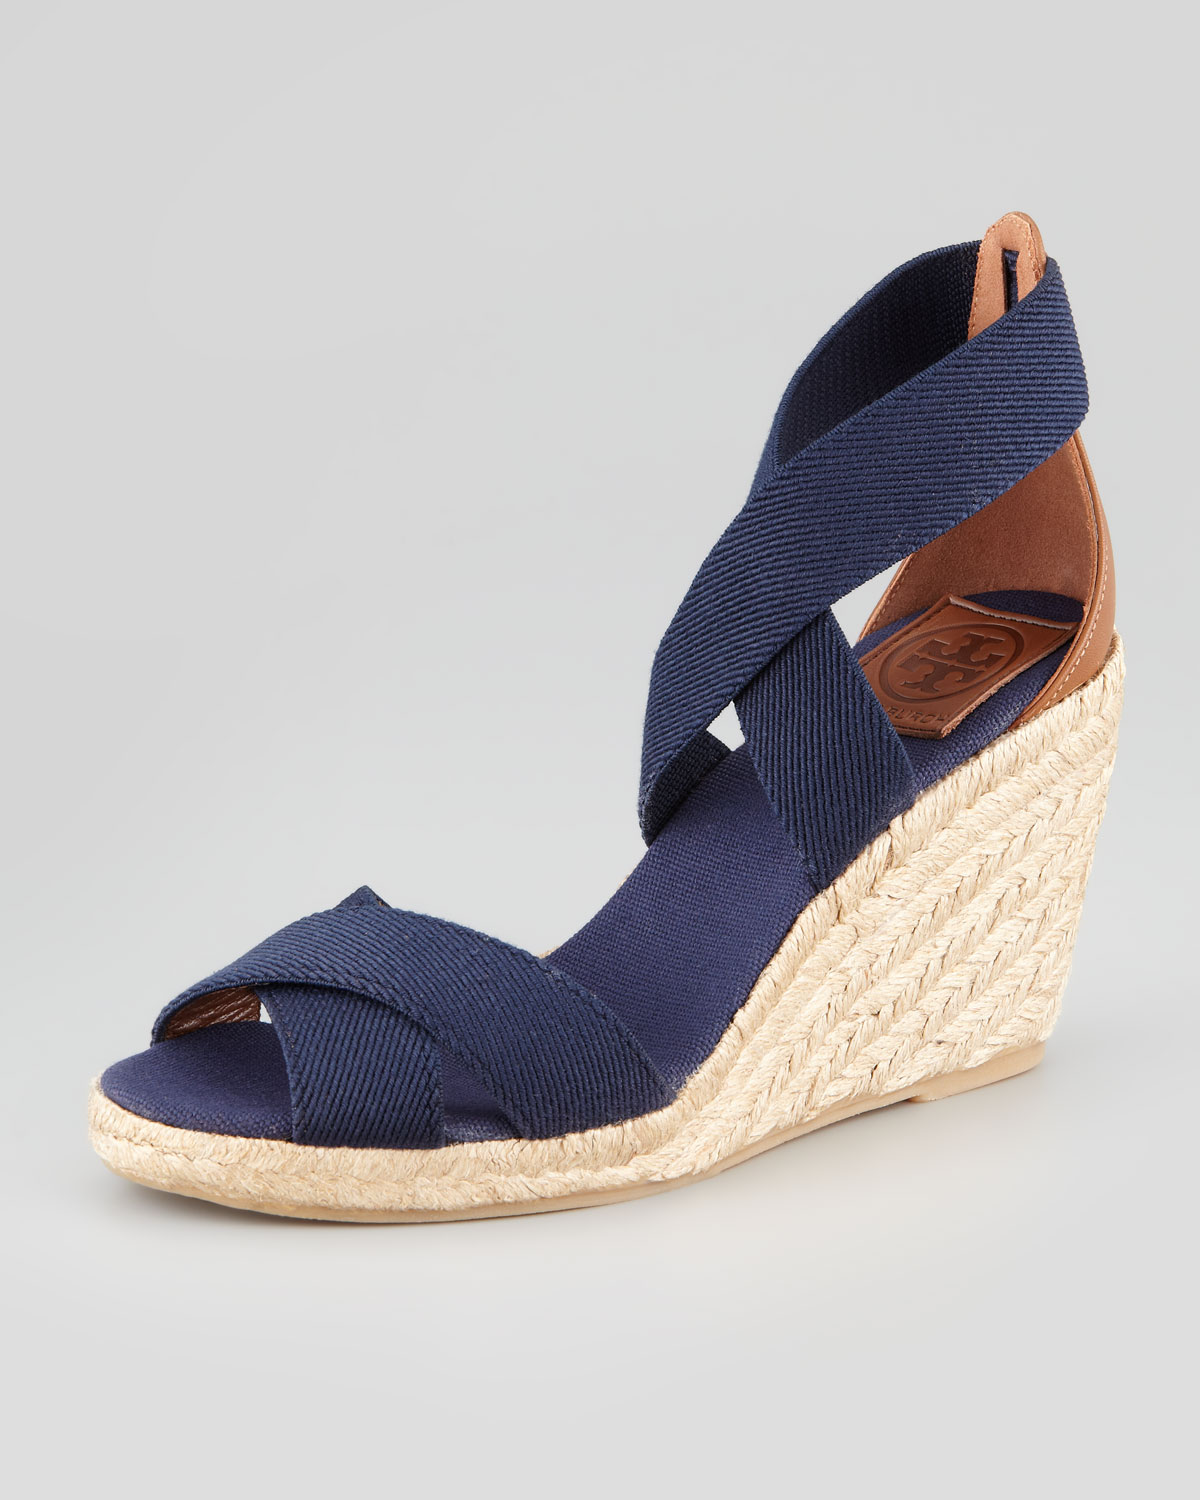 50df2c7a8237 Lyst - Tory Burch Adonis Stretch Espadrille Wedge in Blue